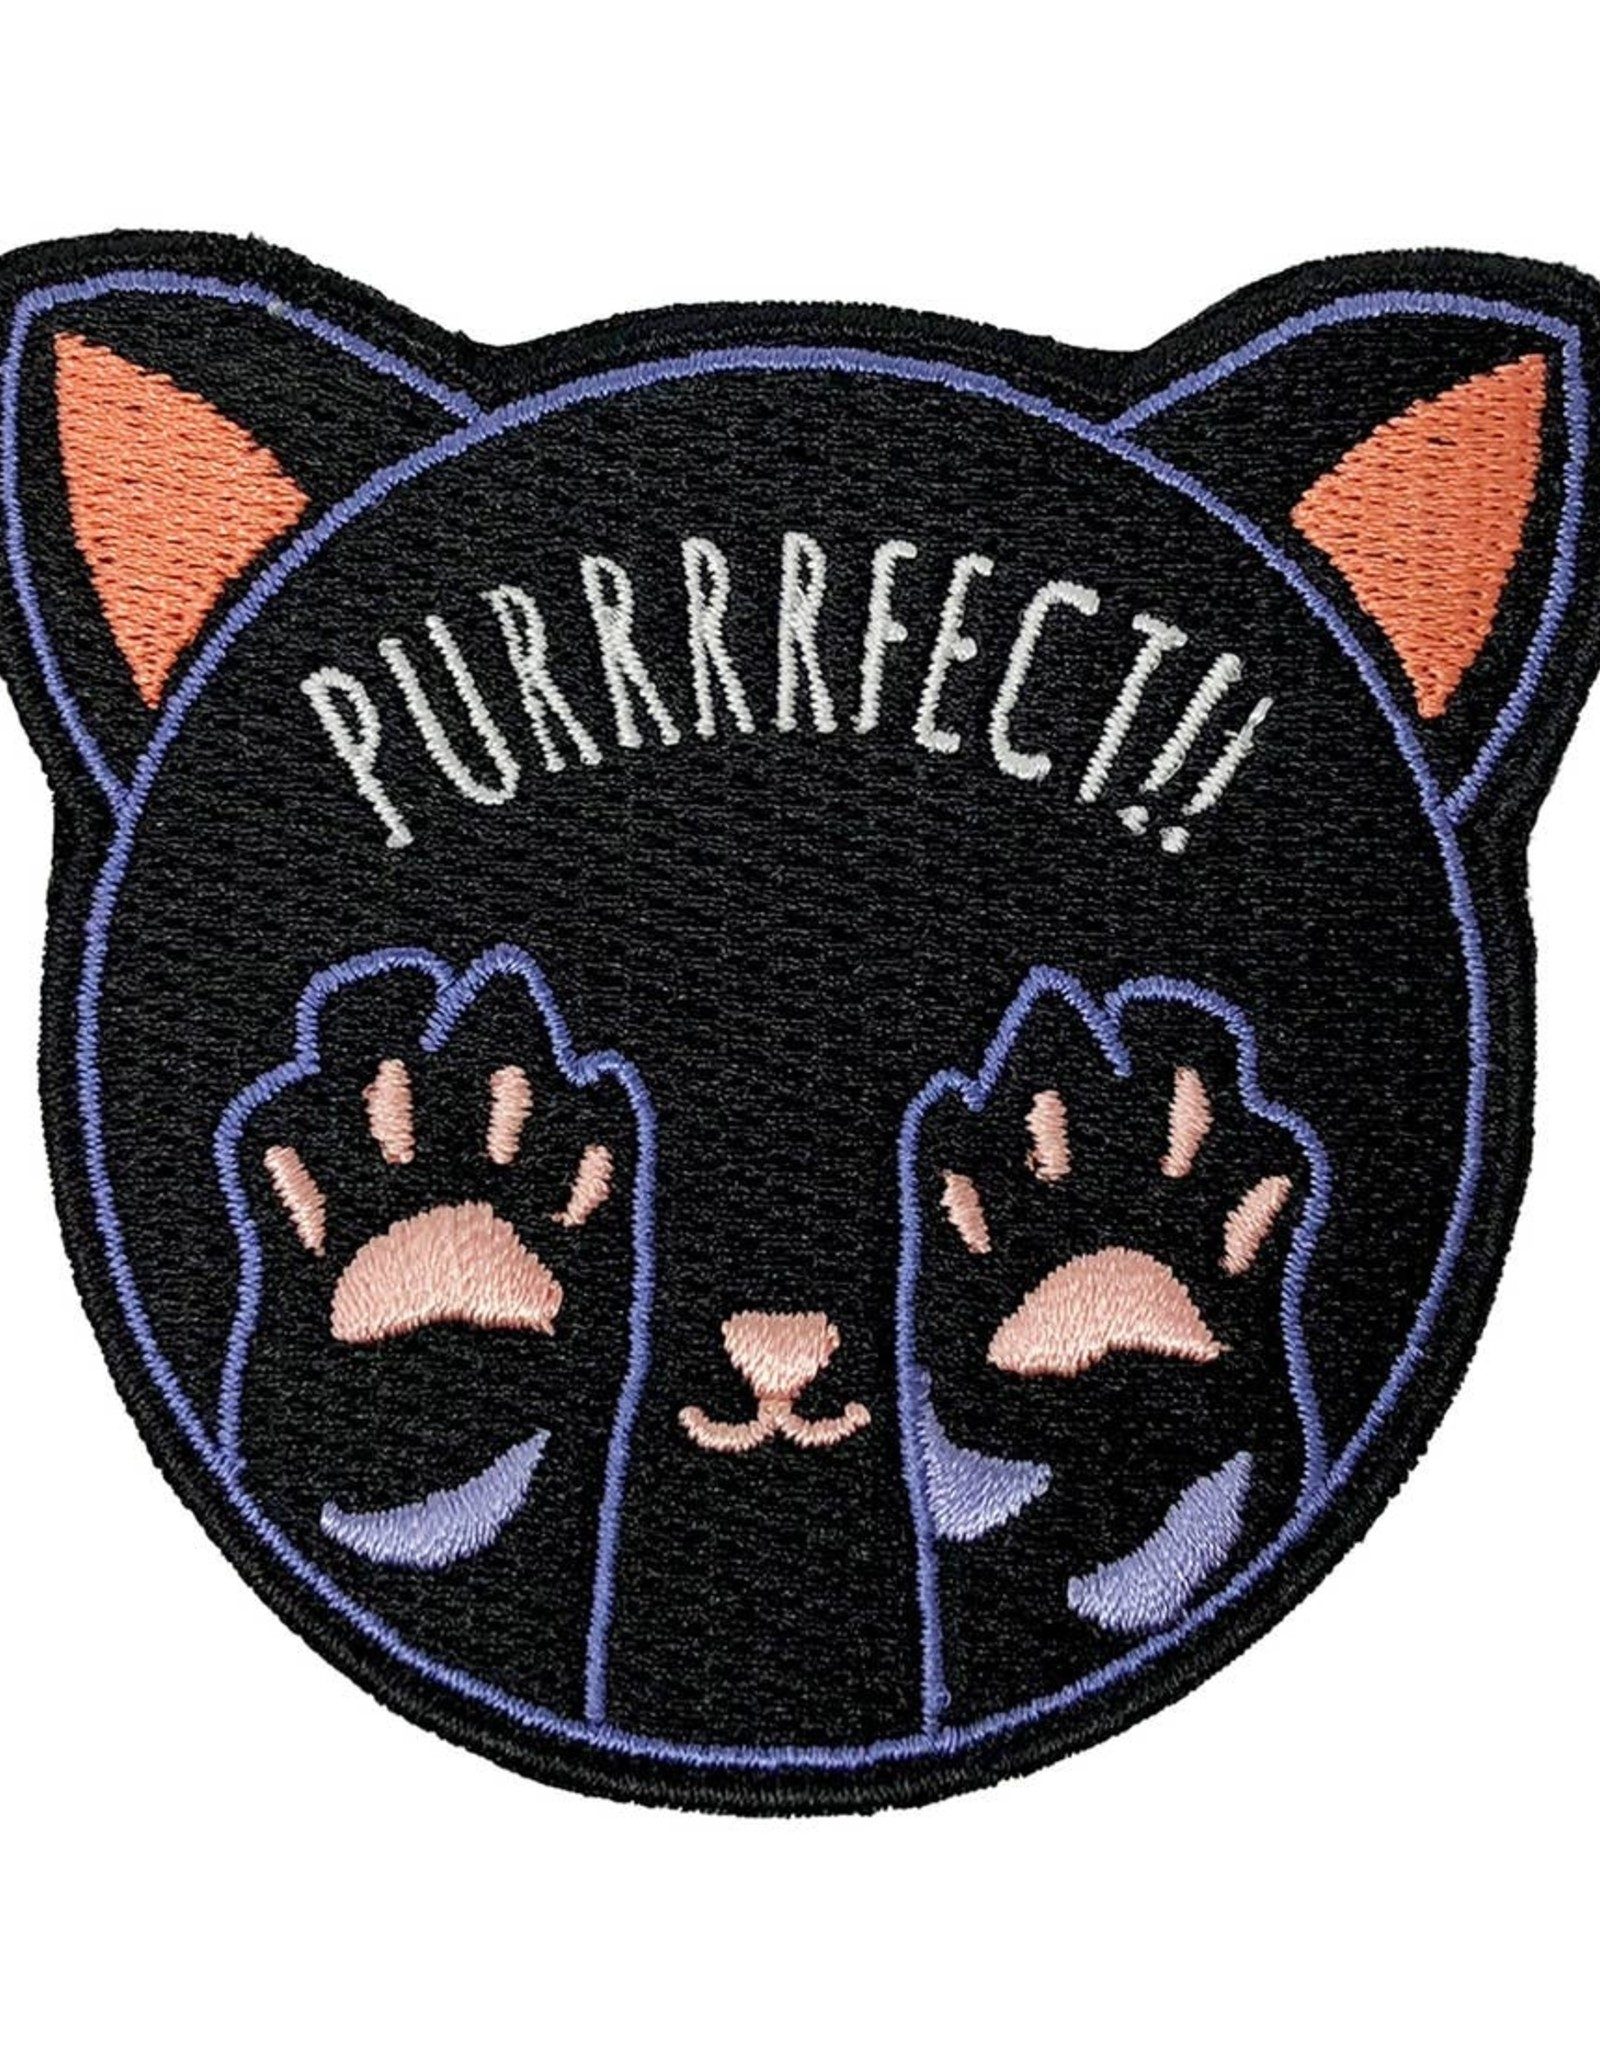 Patches and Pins Patch: Purrrrrfect!